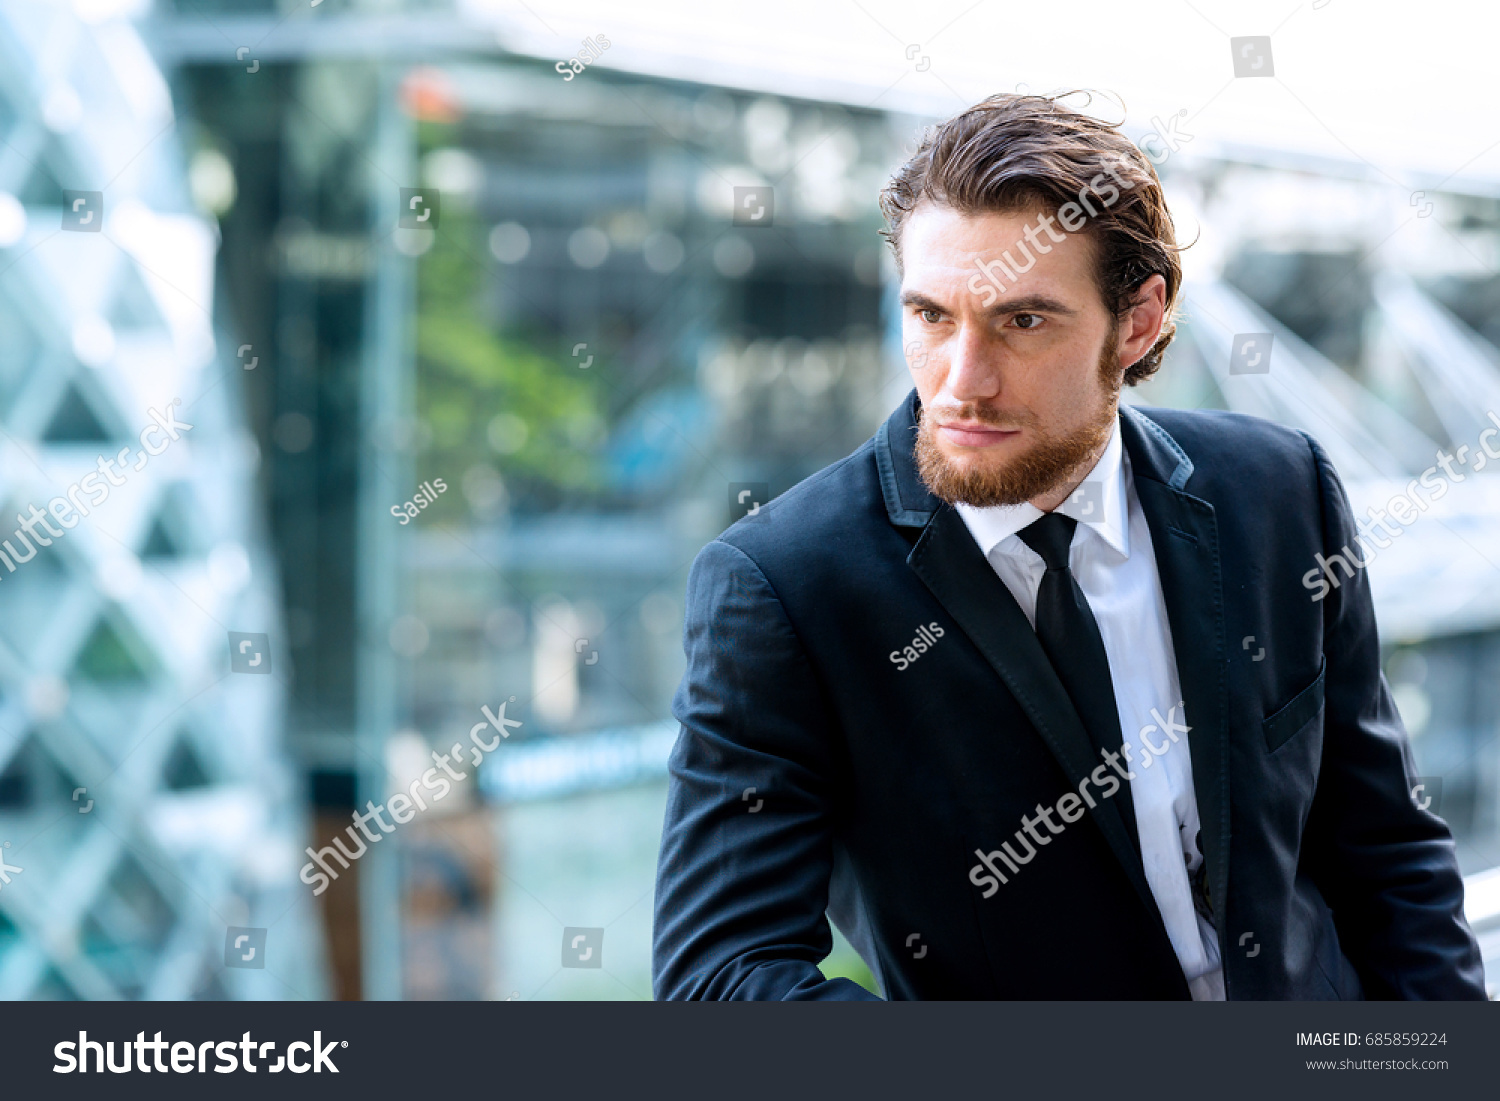 Confident Young Business Man Black Tie Stock Photo (Royalty Free ...